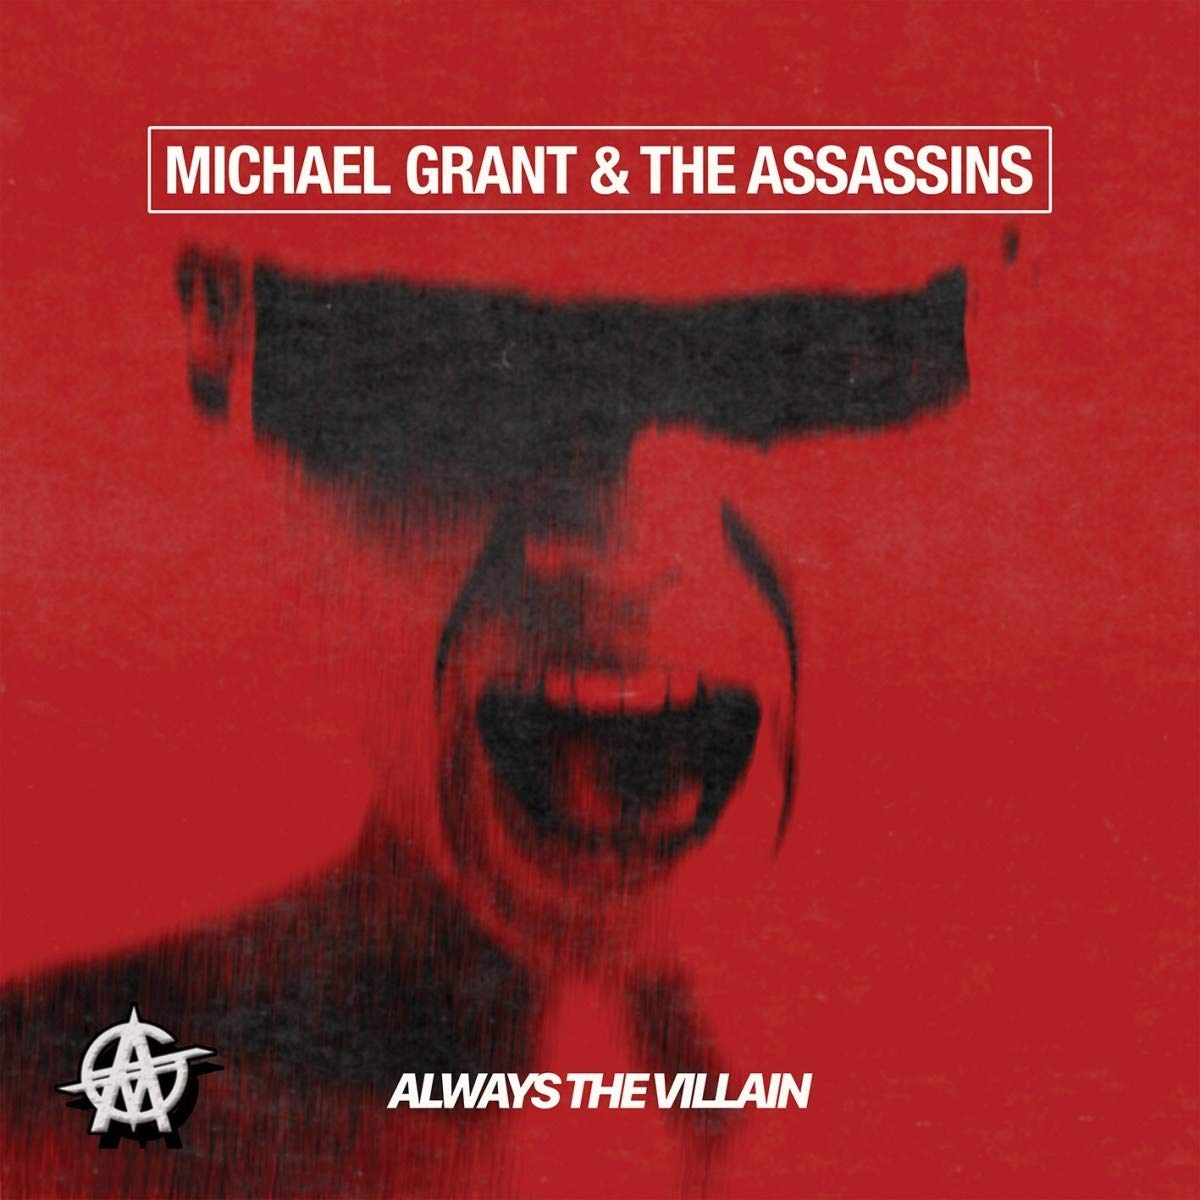 Michael Grant & The Assassins - Always The Villain (2020) [FLAC] Download